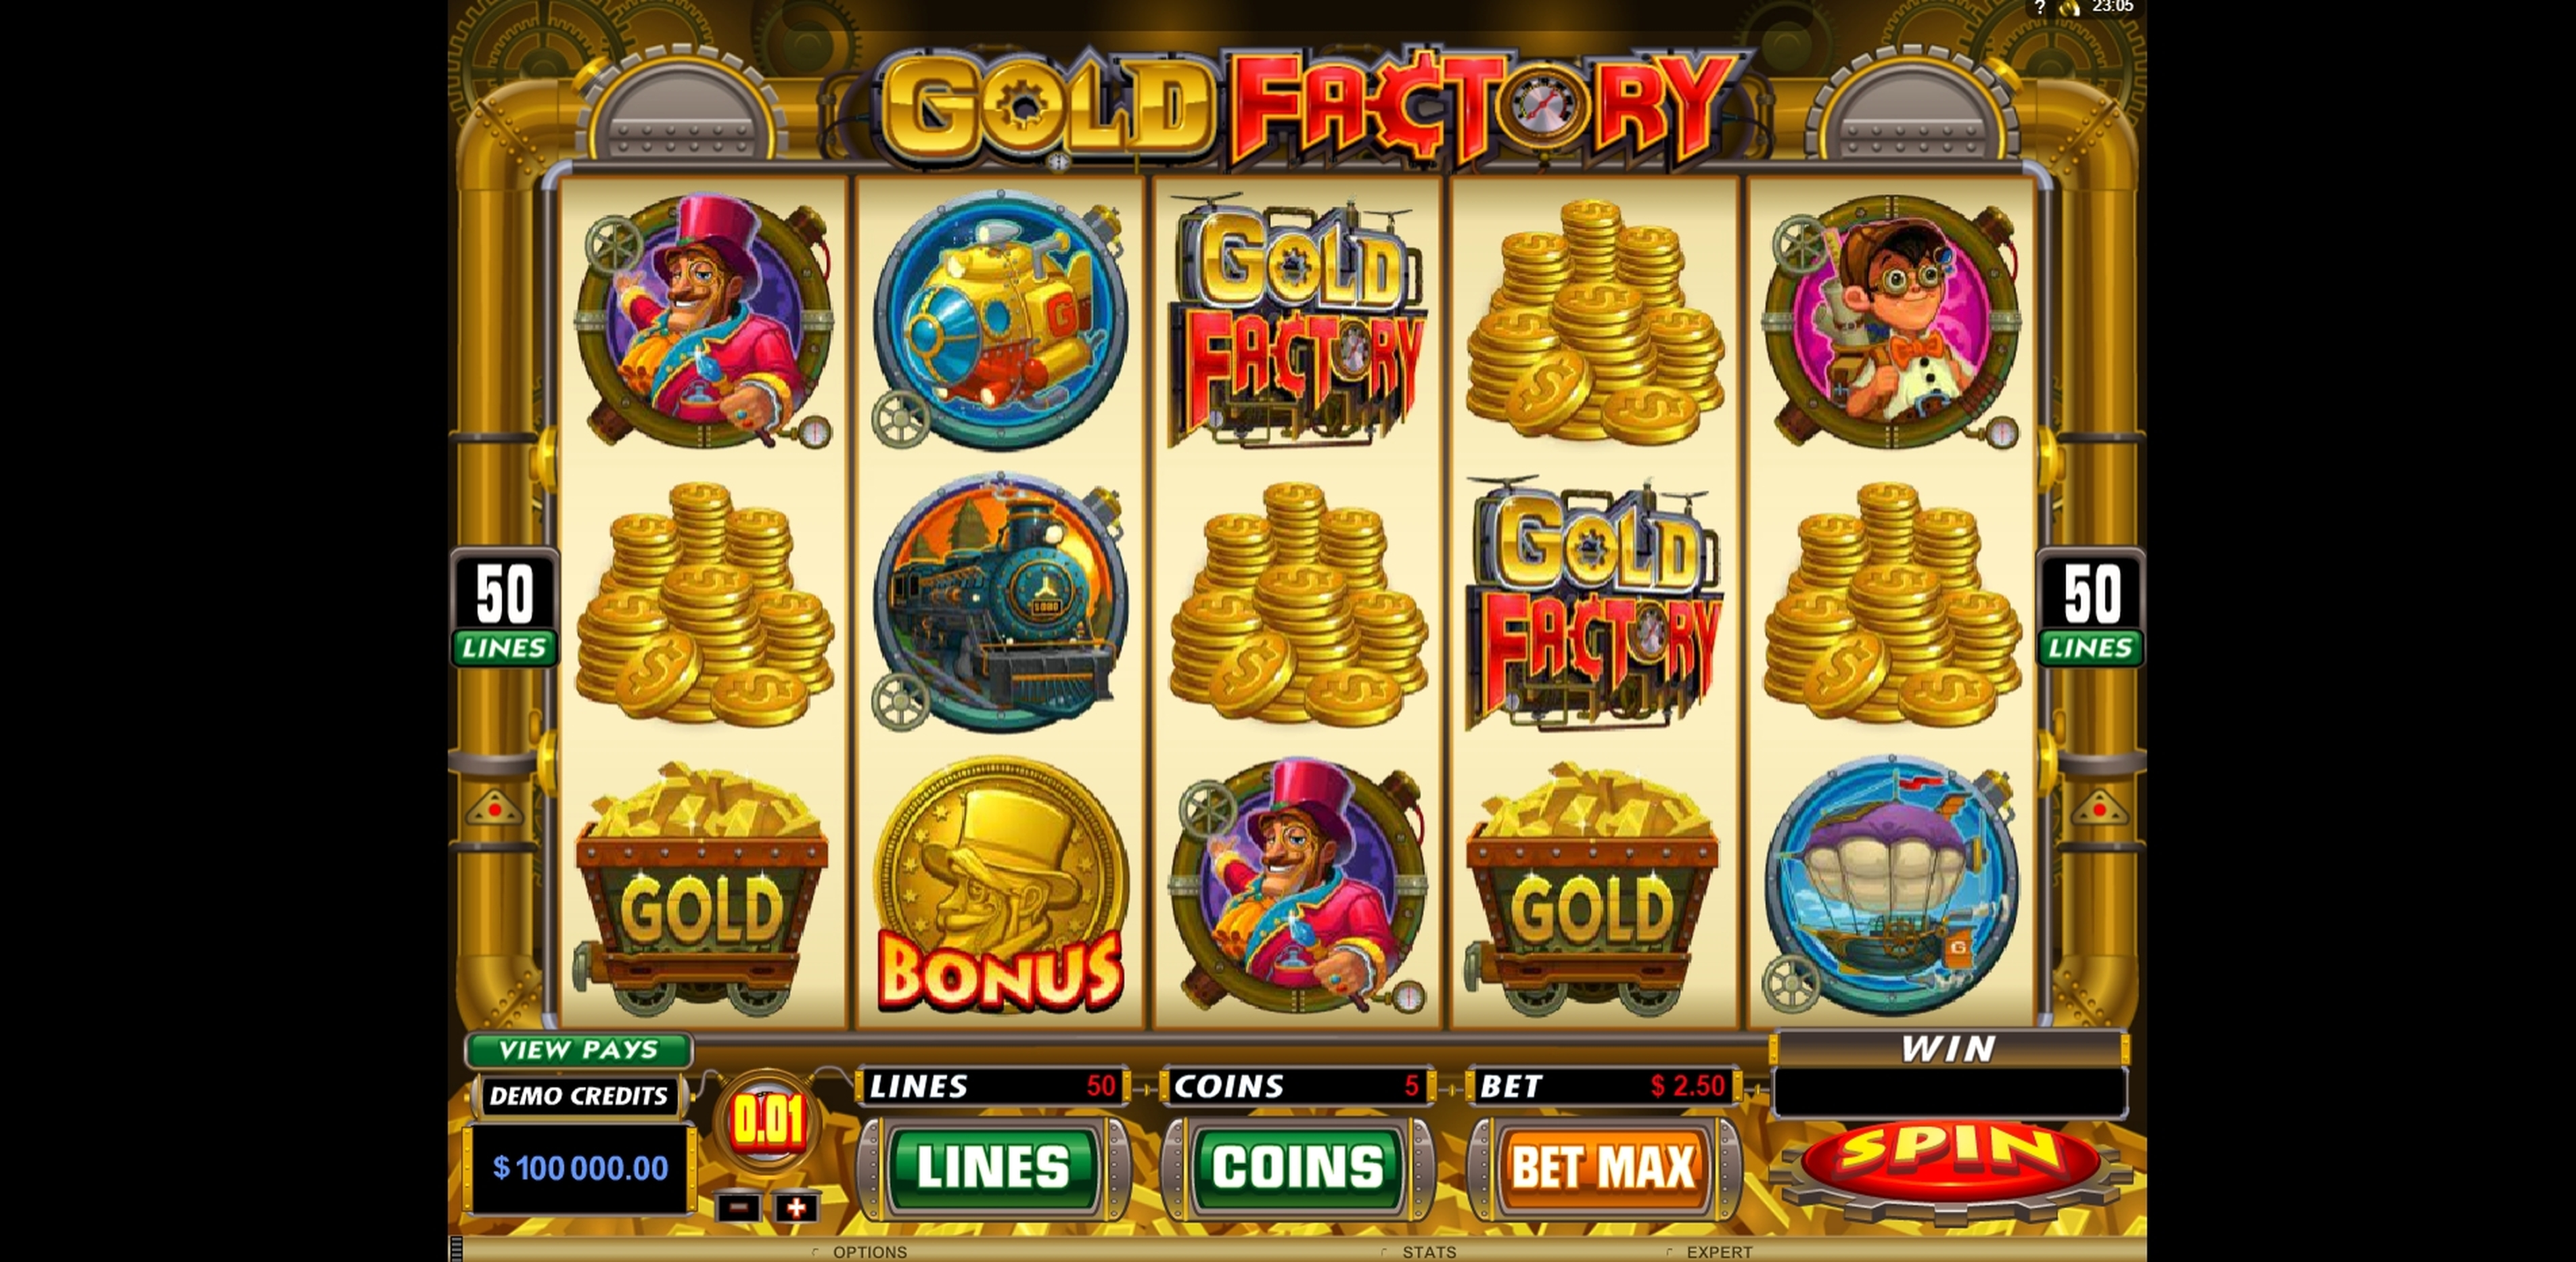 Reels in Gold Factory Slot Game by Microgaming